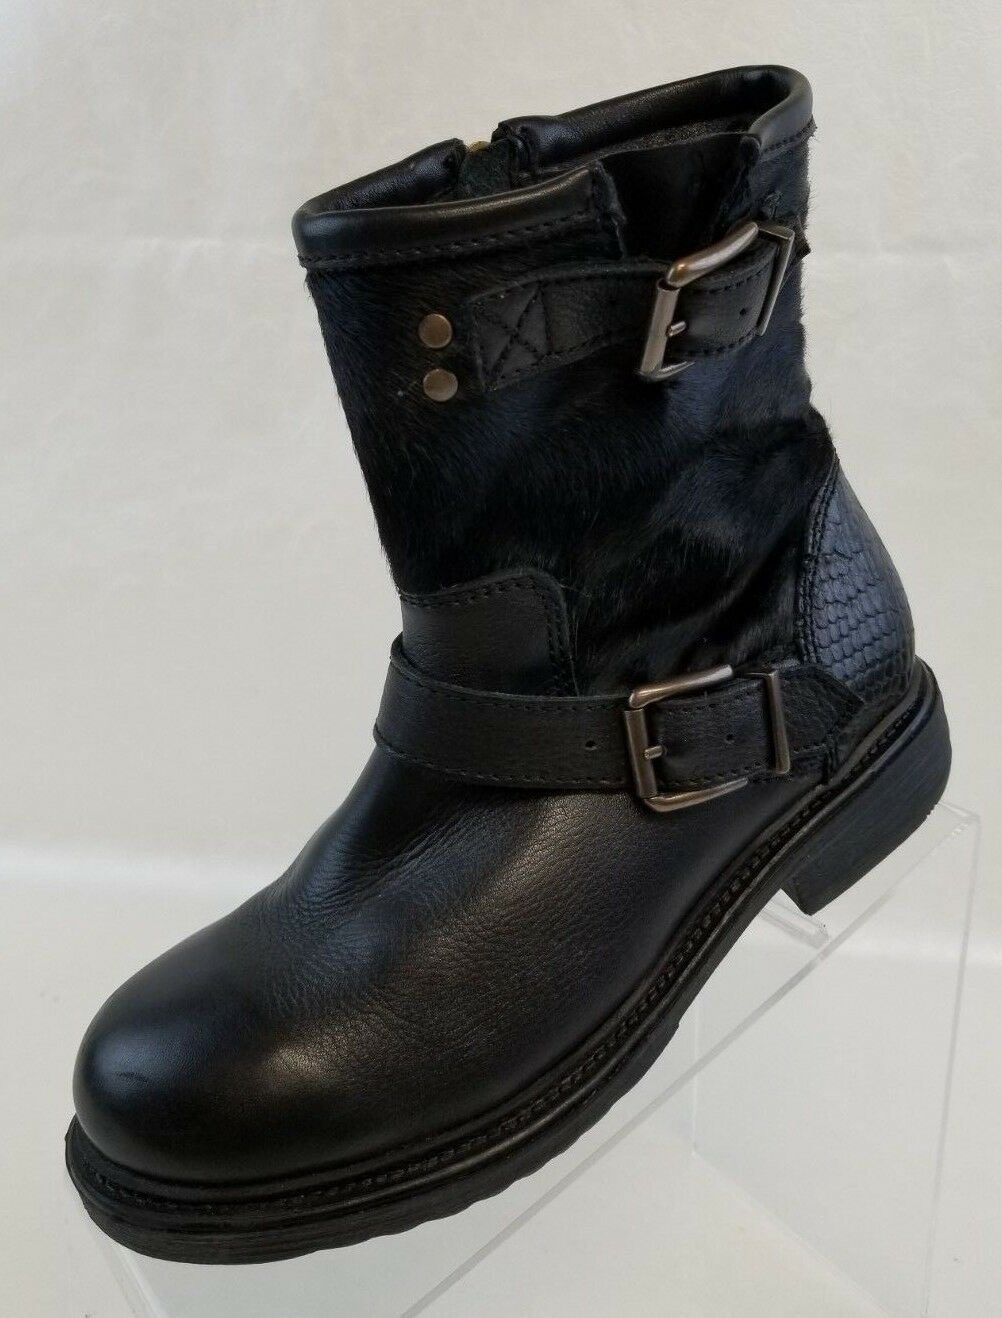 Bronx Ankle Boots Buckle Zip Womens Faux Fur Black Leather shoes Sz EU 36 US 5.5